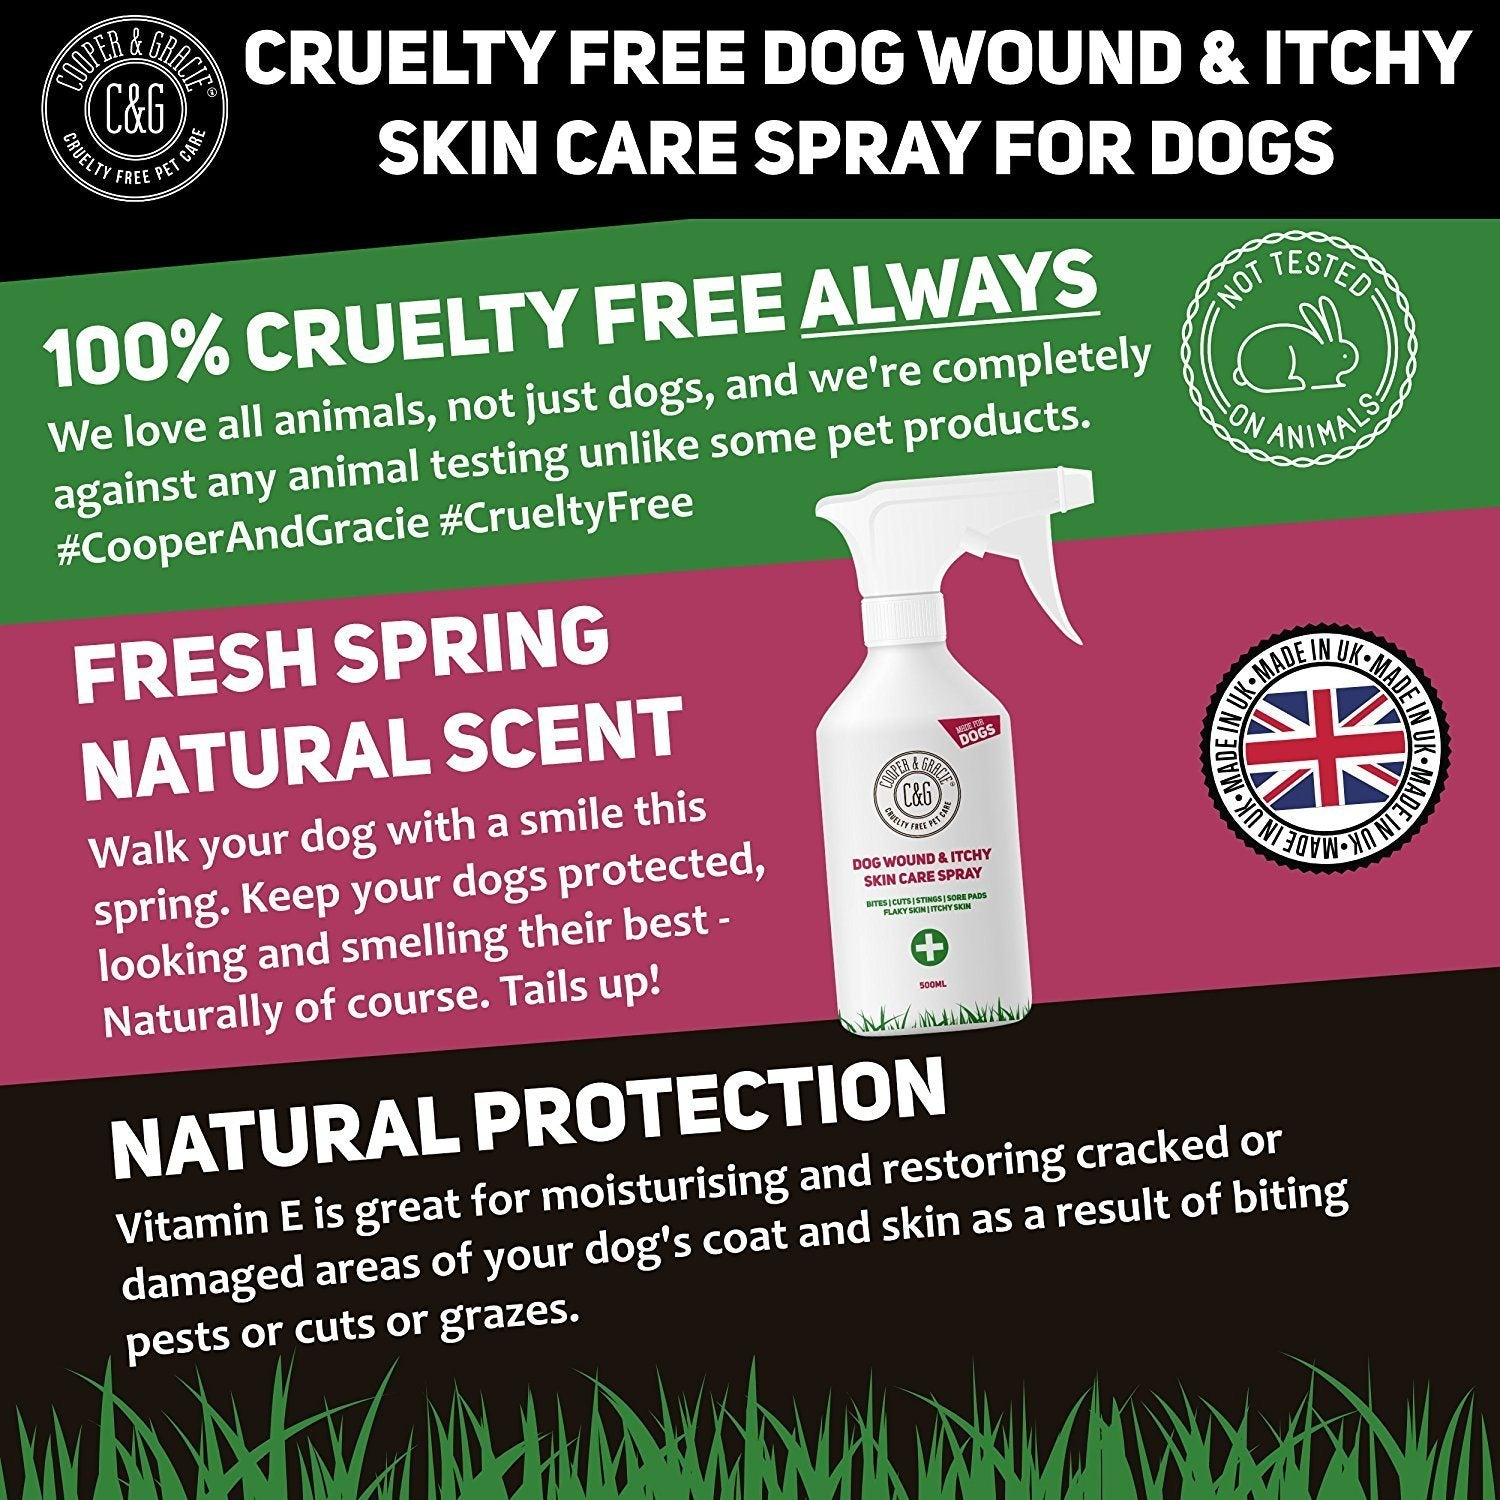 PURPLE WOUND SPRAY FOR DOGS - BEST ORGANIC NATURAL